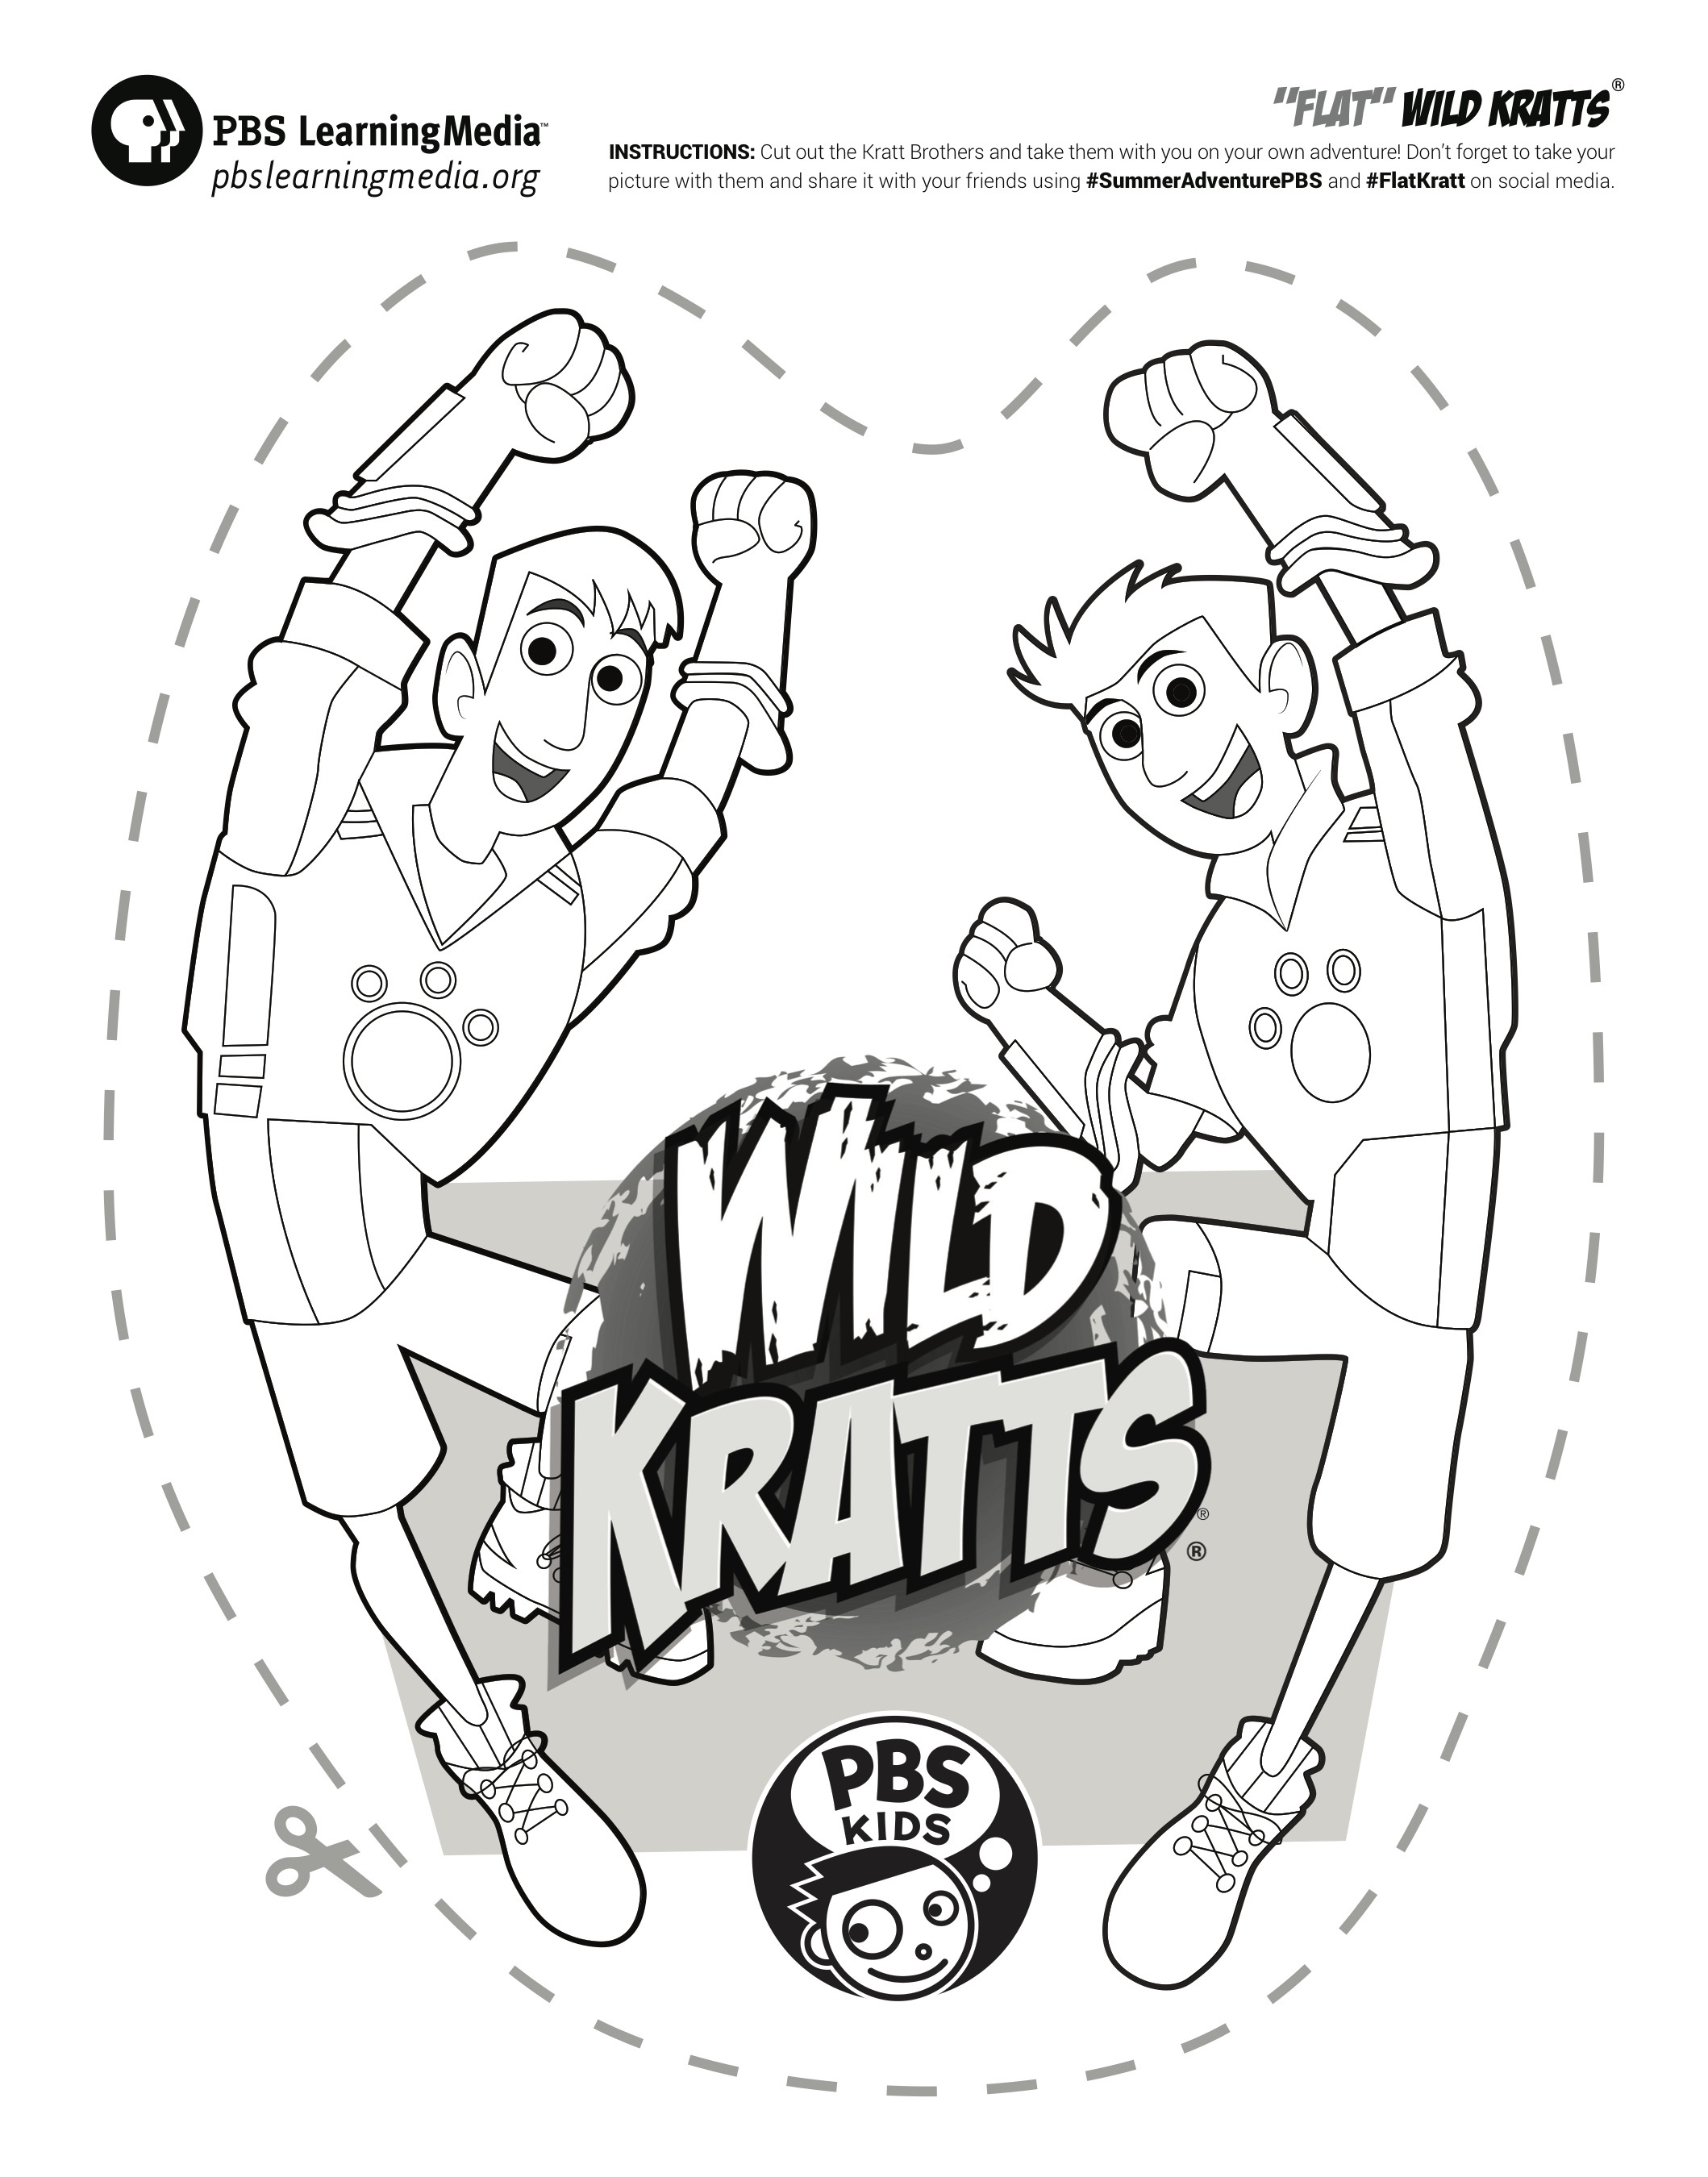 Flat Kratts Printable